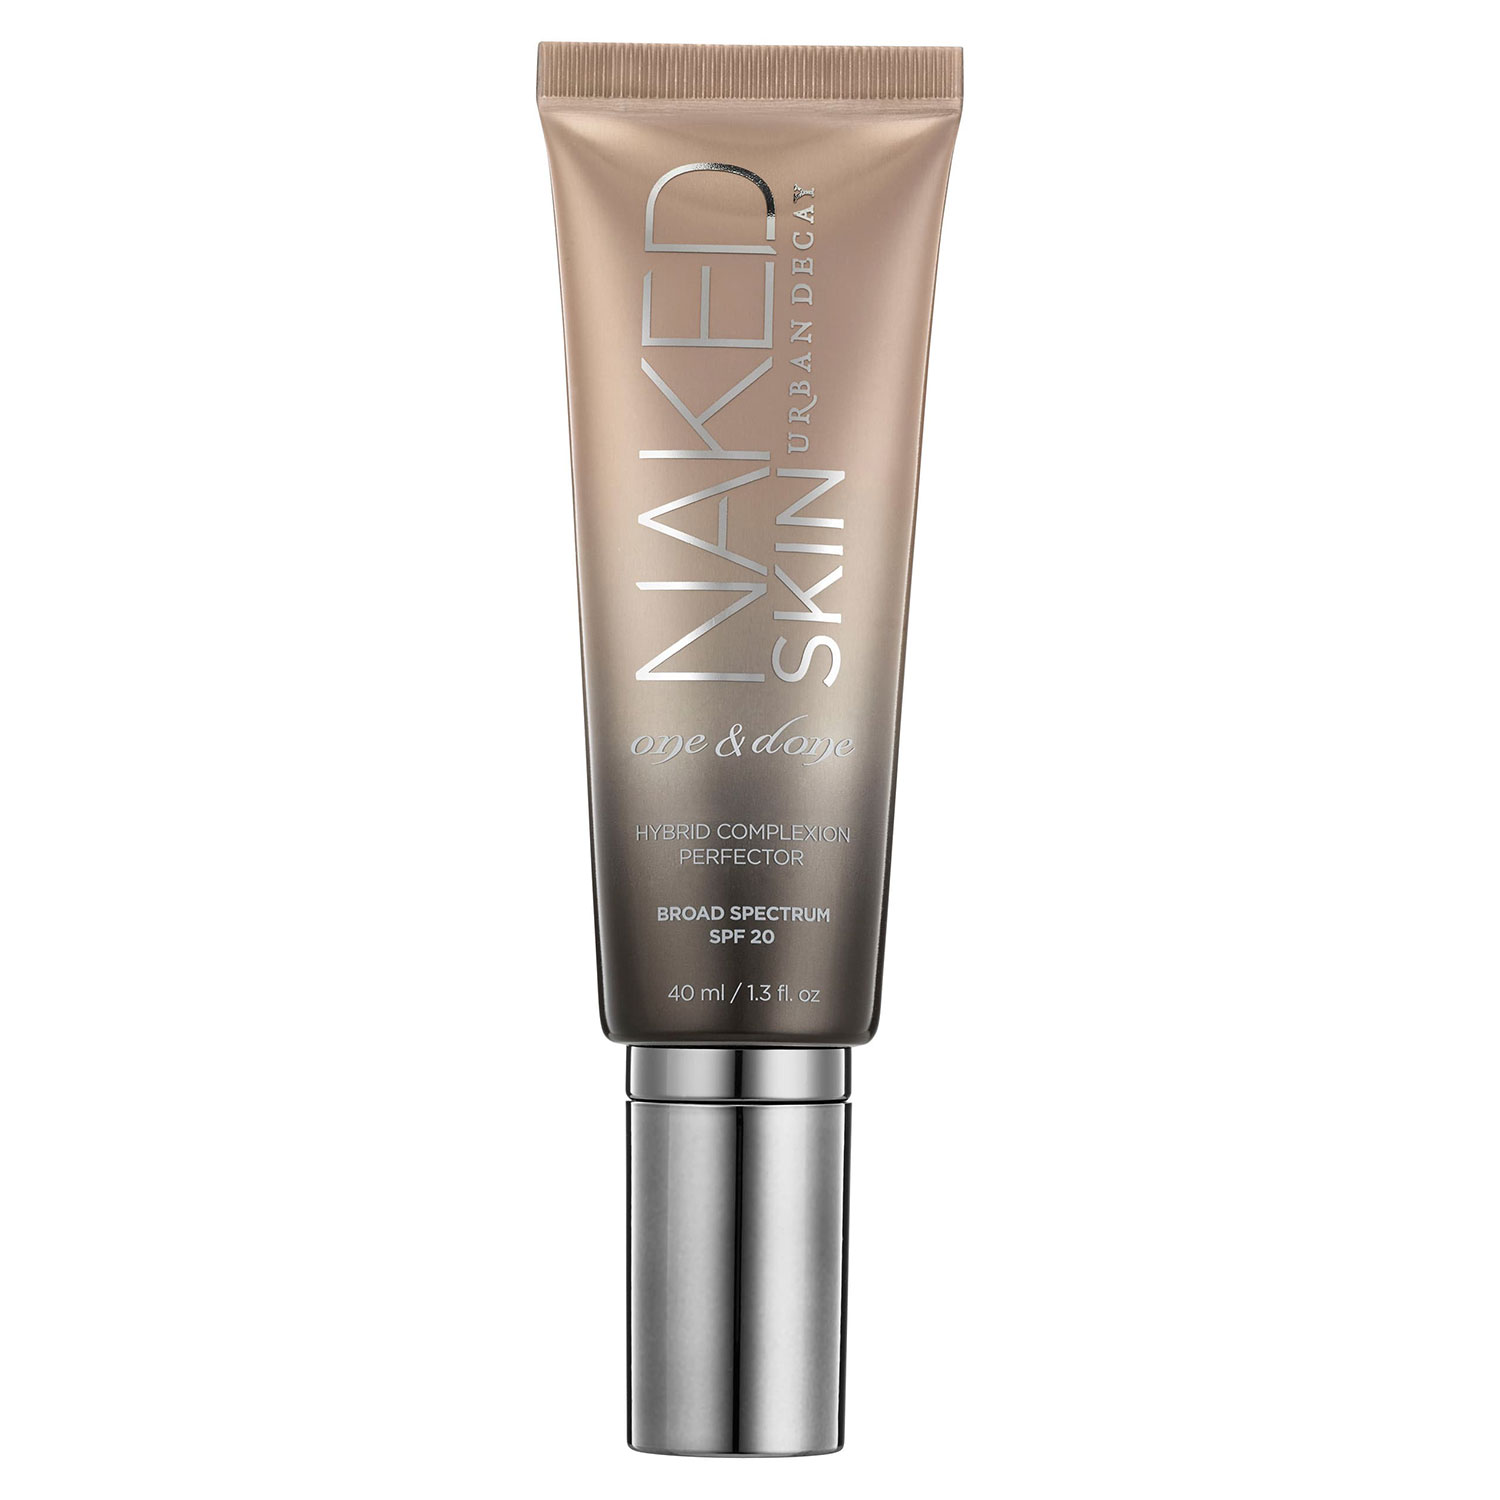 Urban Decay Naked Skin One & Done Hybrid Complexion Perfector Foundation